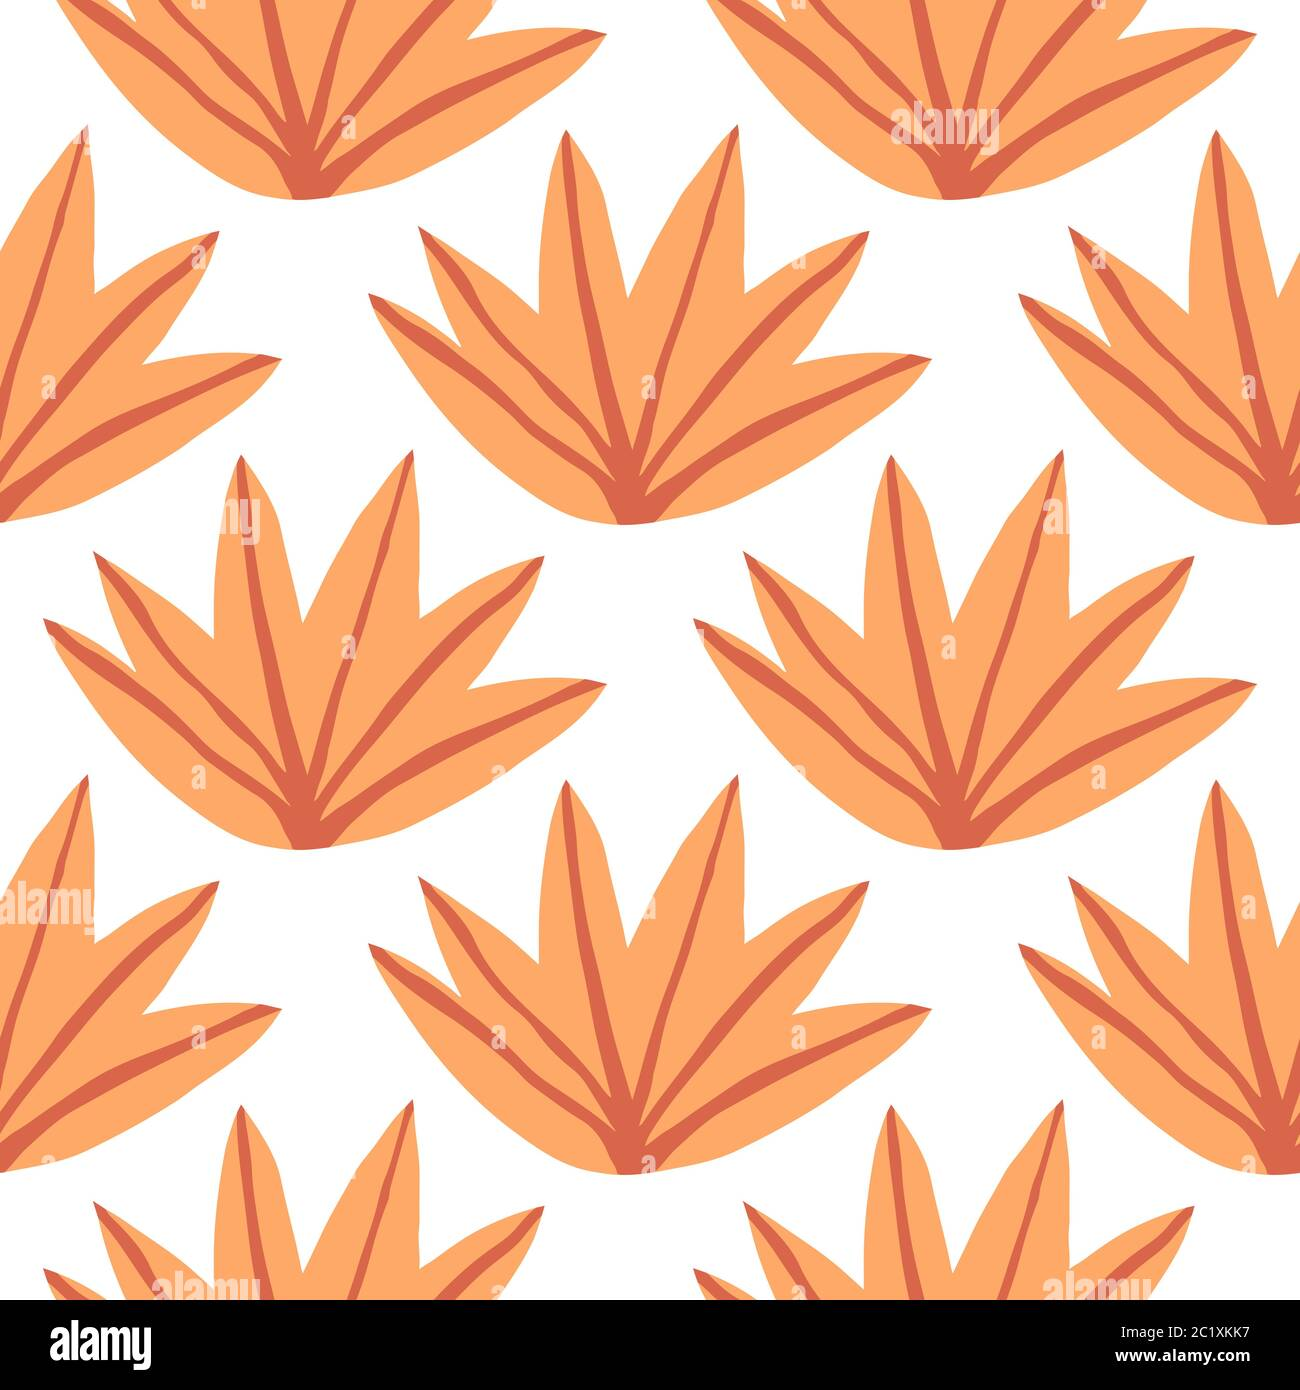 Contemporary Tropical Leaves Seamless Pattern On White Backgrond Tropic Palm Leaf Doodle Vector Illustration Design For Fabric Textile Print Wrapp Stock Vector Image Art Alamy «#tropical #leaves #doodle #feathers #firstinawhile #be #creative #green». alamy